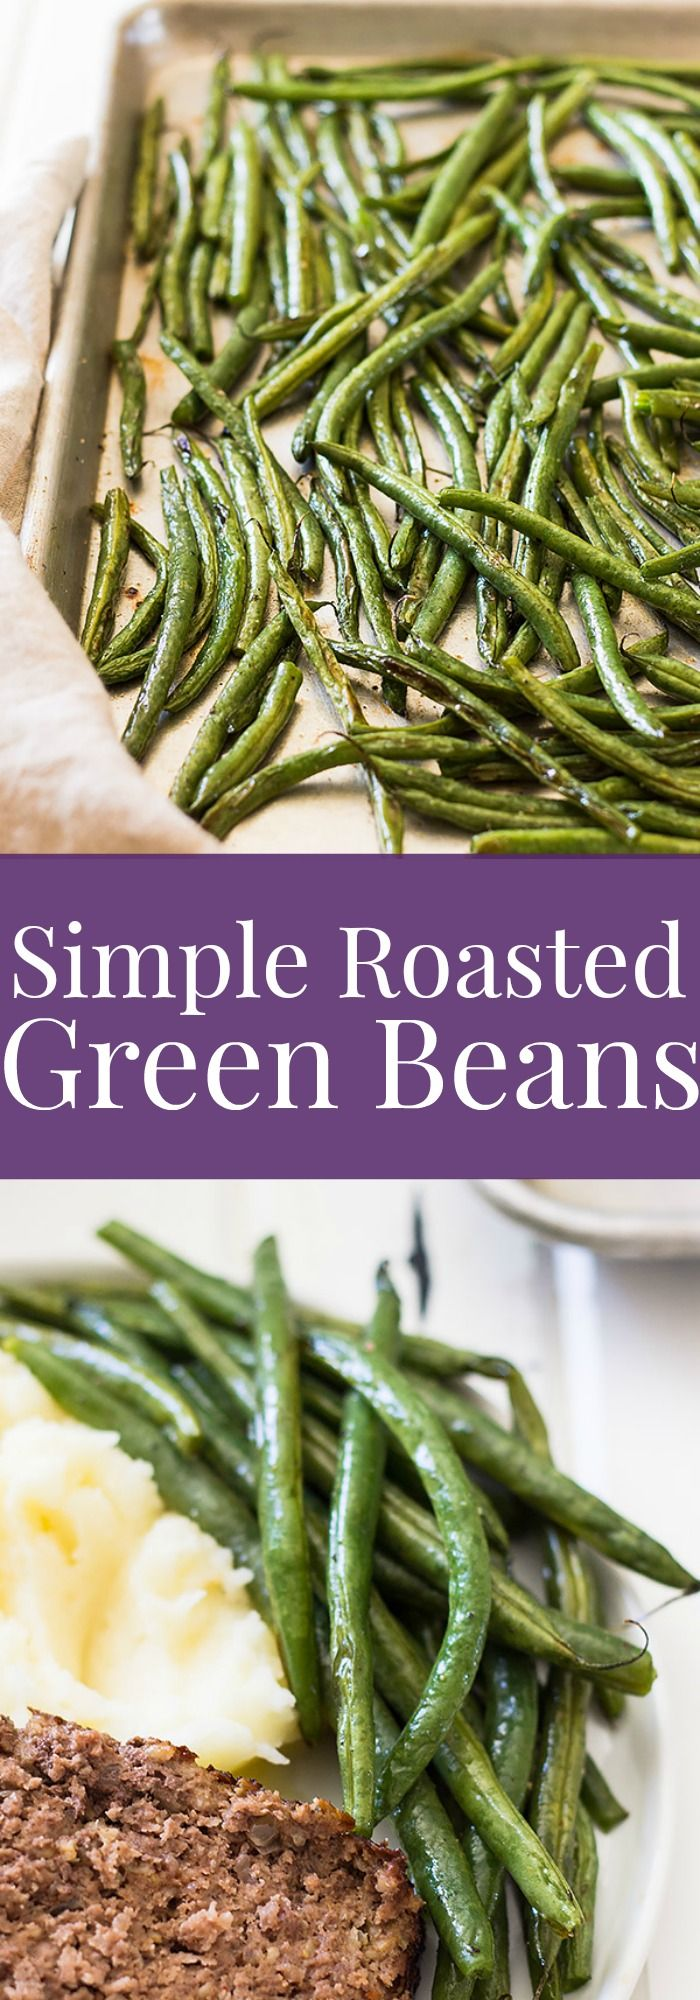 These Simple Roasted Green Beans are a really quick side dish that will add nutrition to any meal! | www.countrysidecravings.com